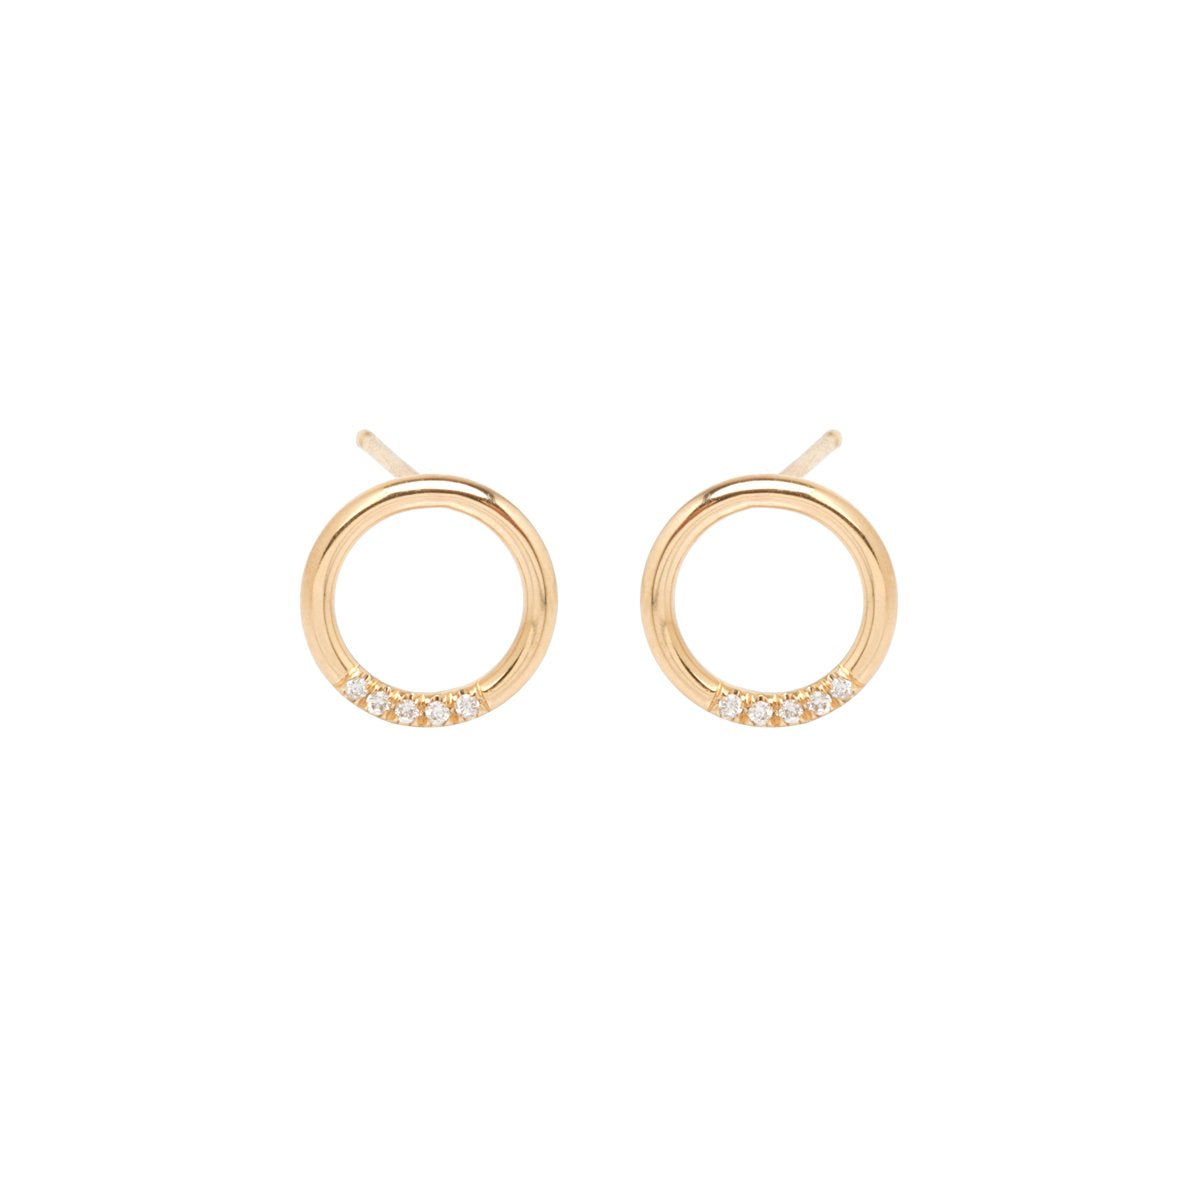 Thick Circle Stud Earrings | Art + Soul Gallery